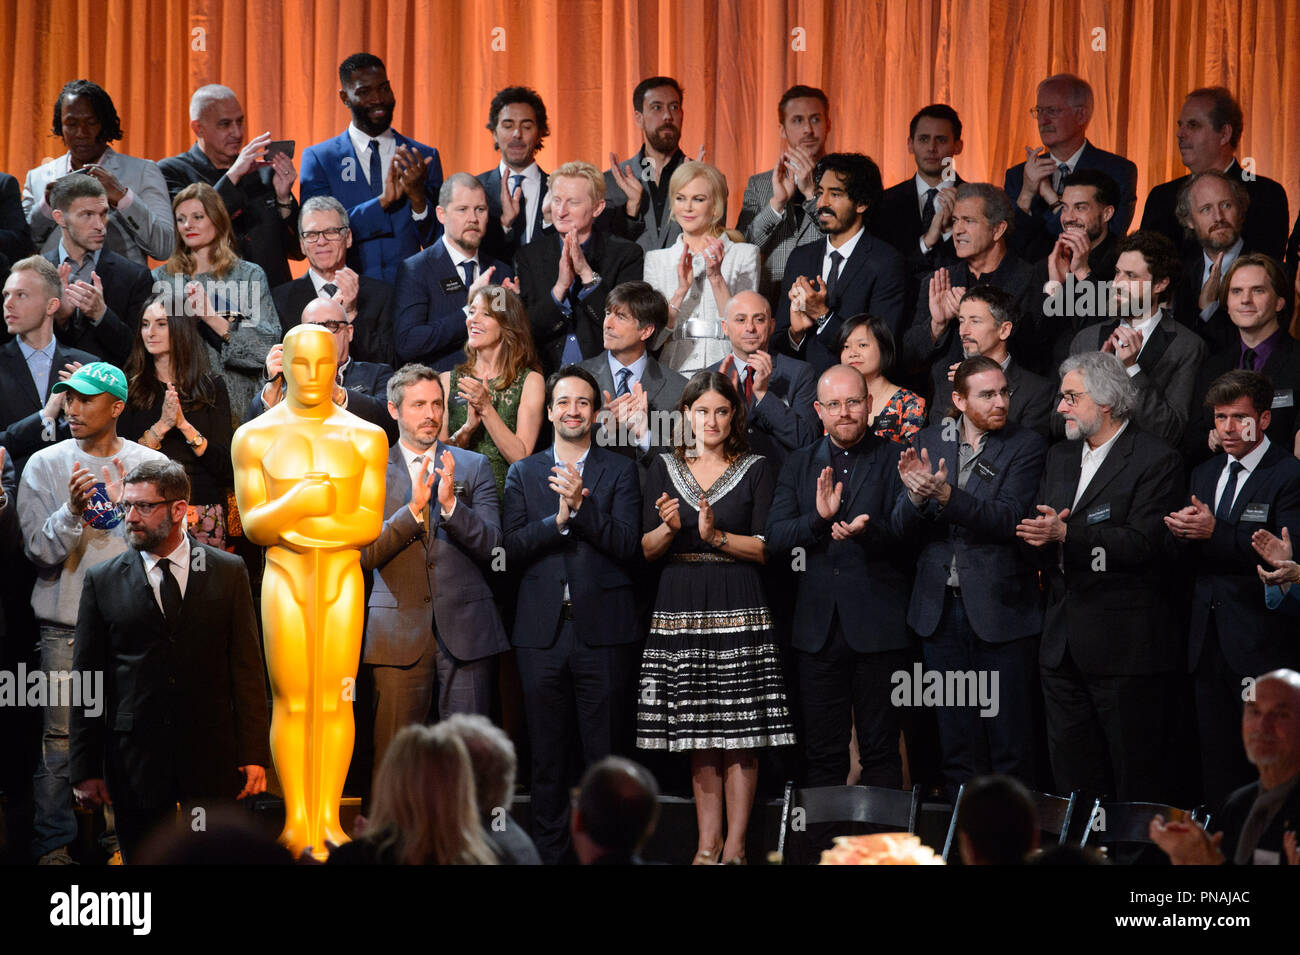 The Oscar® Nominees Luncheon in Beverly Hills Monday, February 6, 2017. The 89th Oscars® will air on Sunday, February 26, live on ABC.  File Reference # 33227_022THA  For Editorial Use Only -  All Rights Reserved - Stock Image